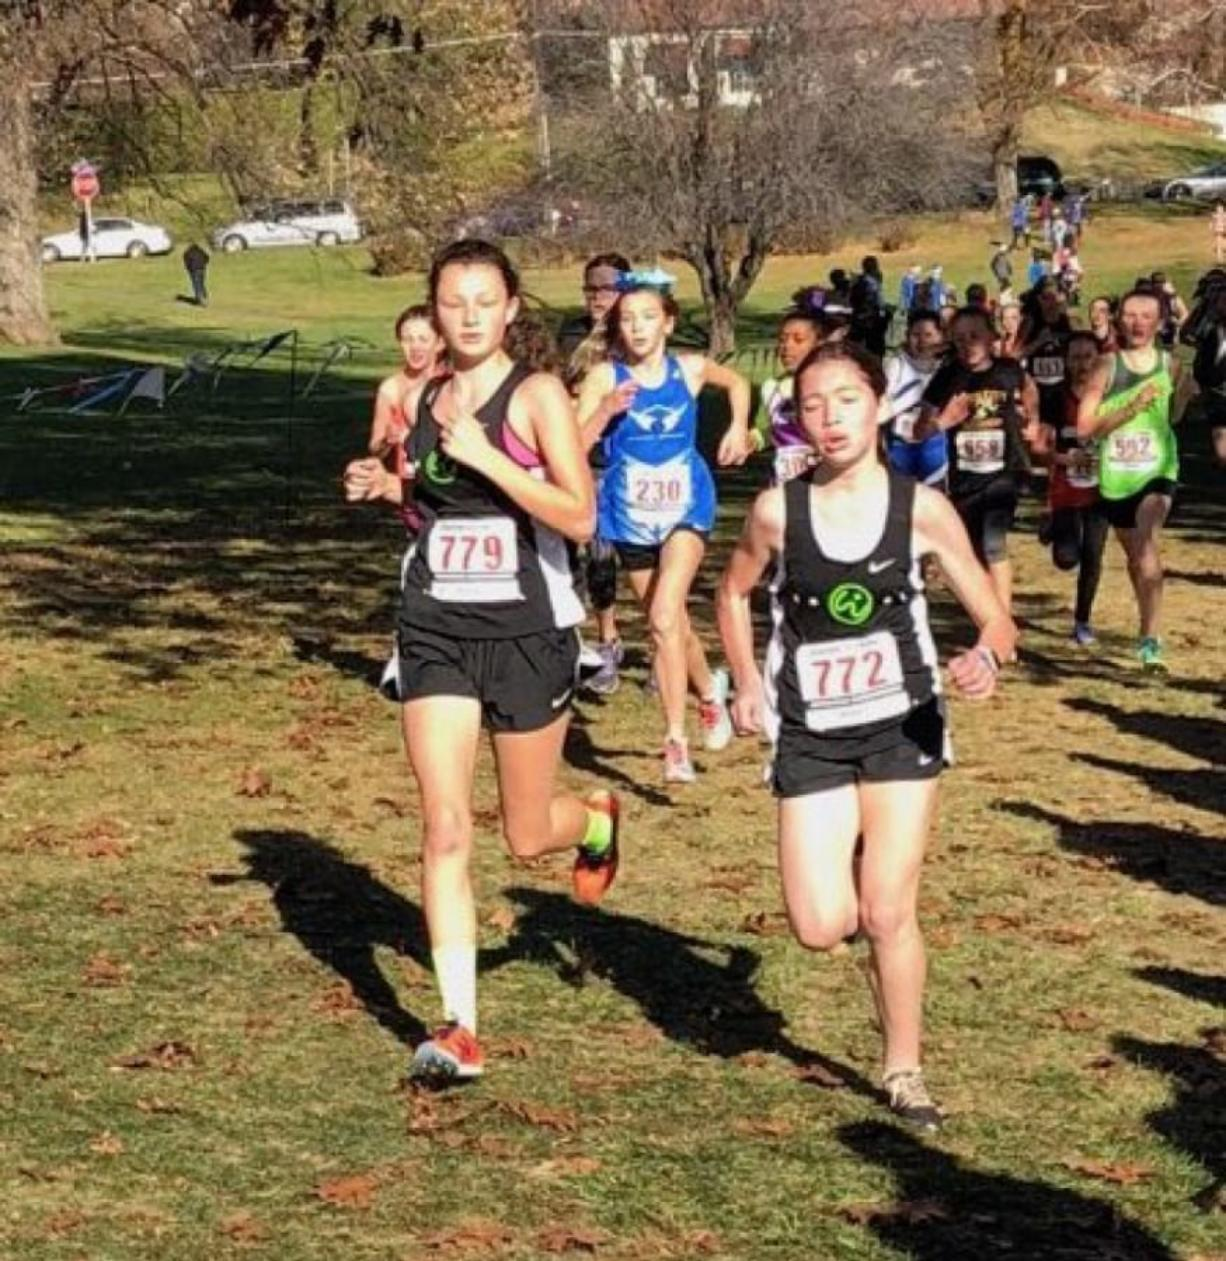 Abigail Rounds, left, and Addison Crum compete in the 11-12 age group race at the USATF Junior Olympic Regional cross country meet Saturday in Yakima. They run for Vancouver-based Whisper Running, which qualified 21 runners for Nationals next month in Reno, Nevada. (Photo courtesy of Dave Caldwell).